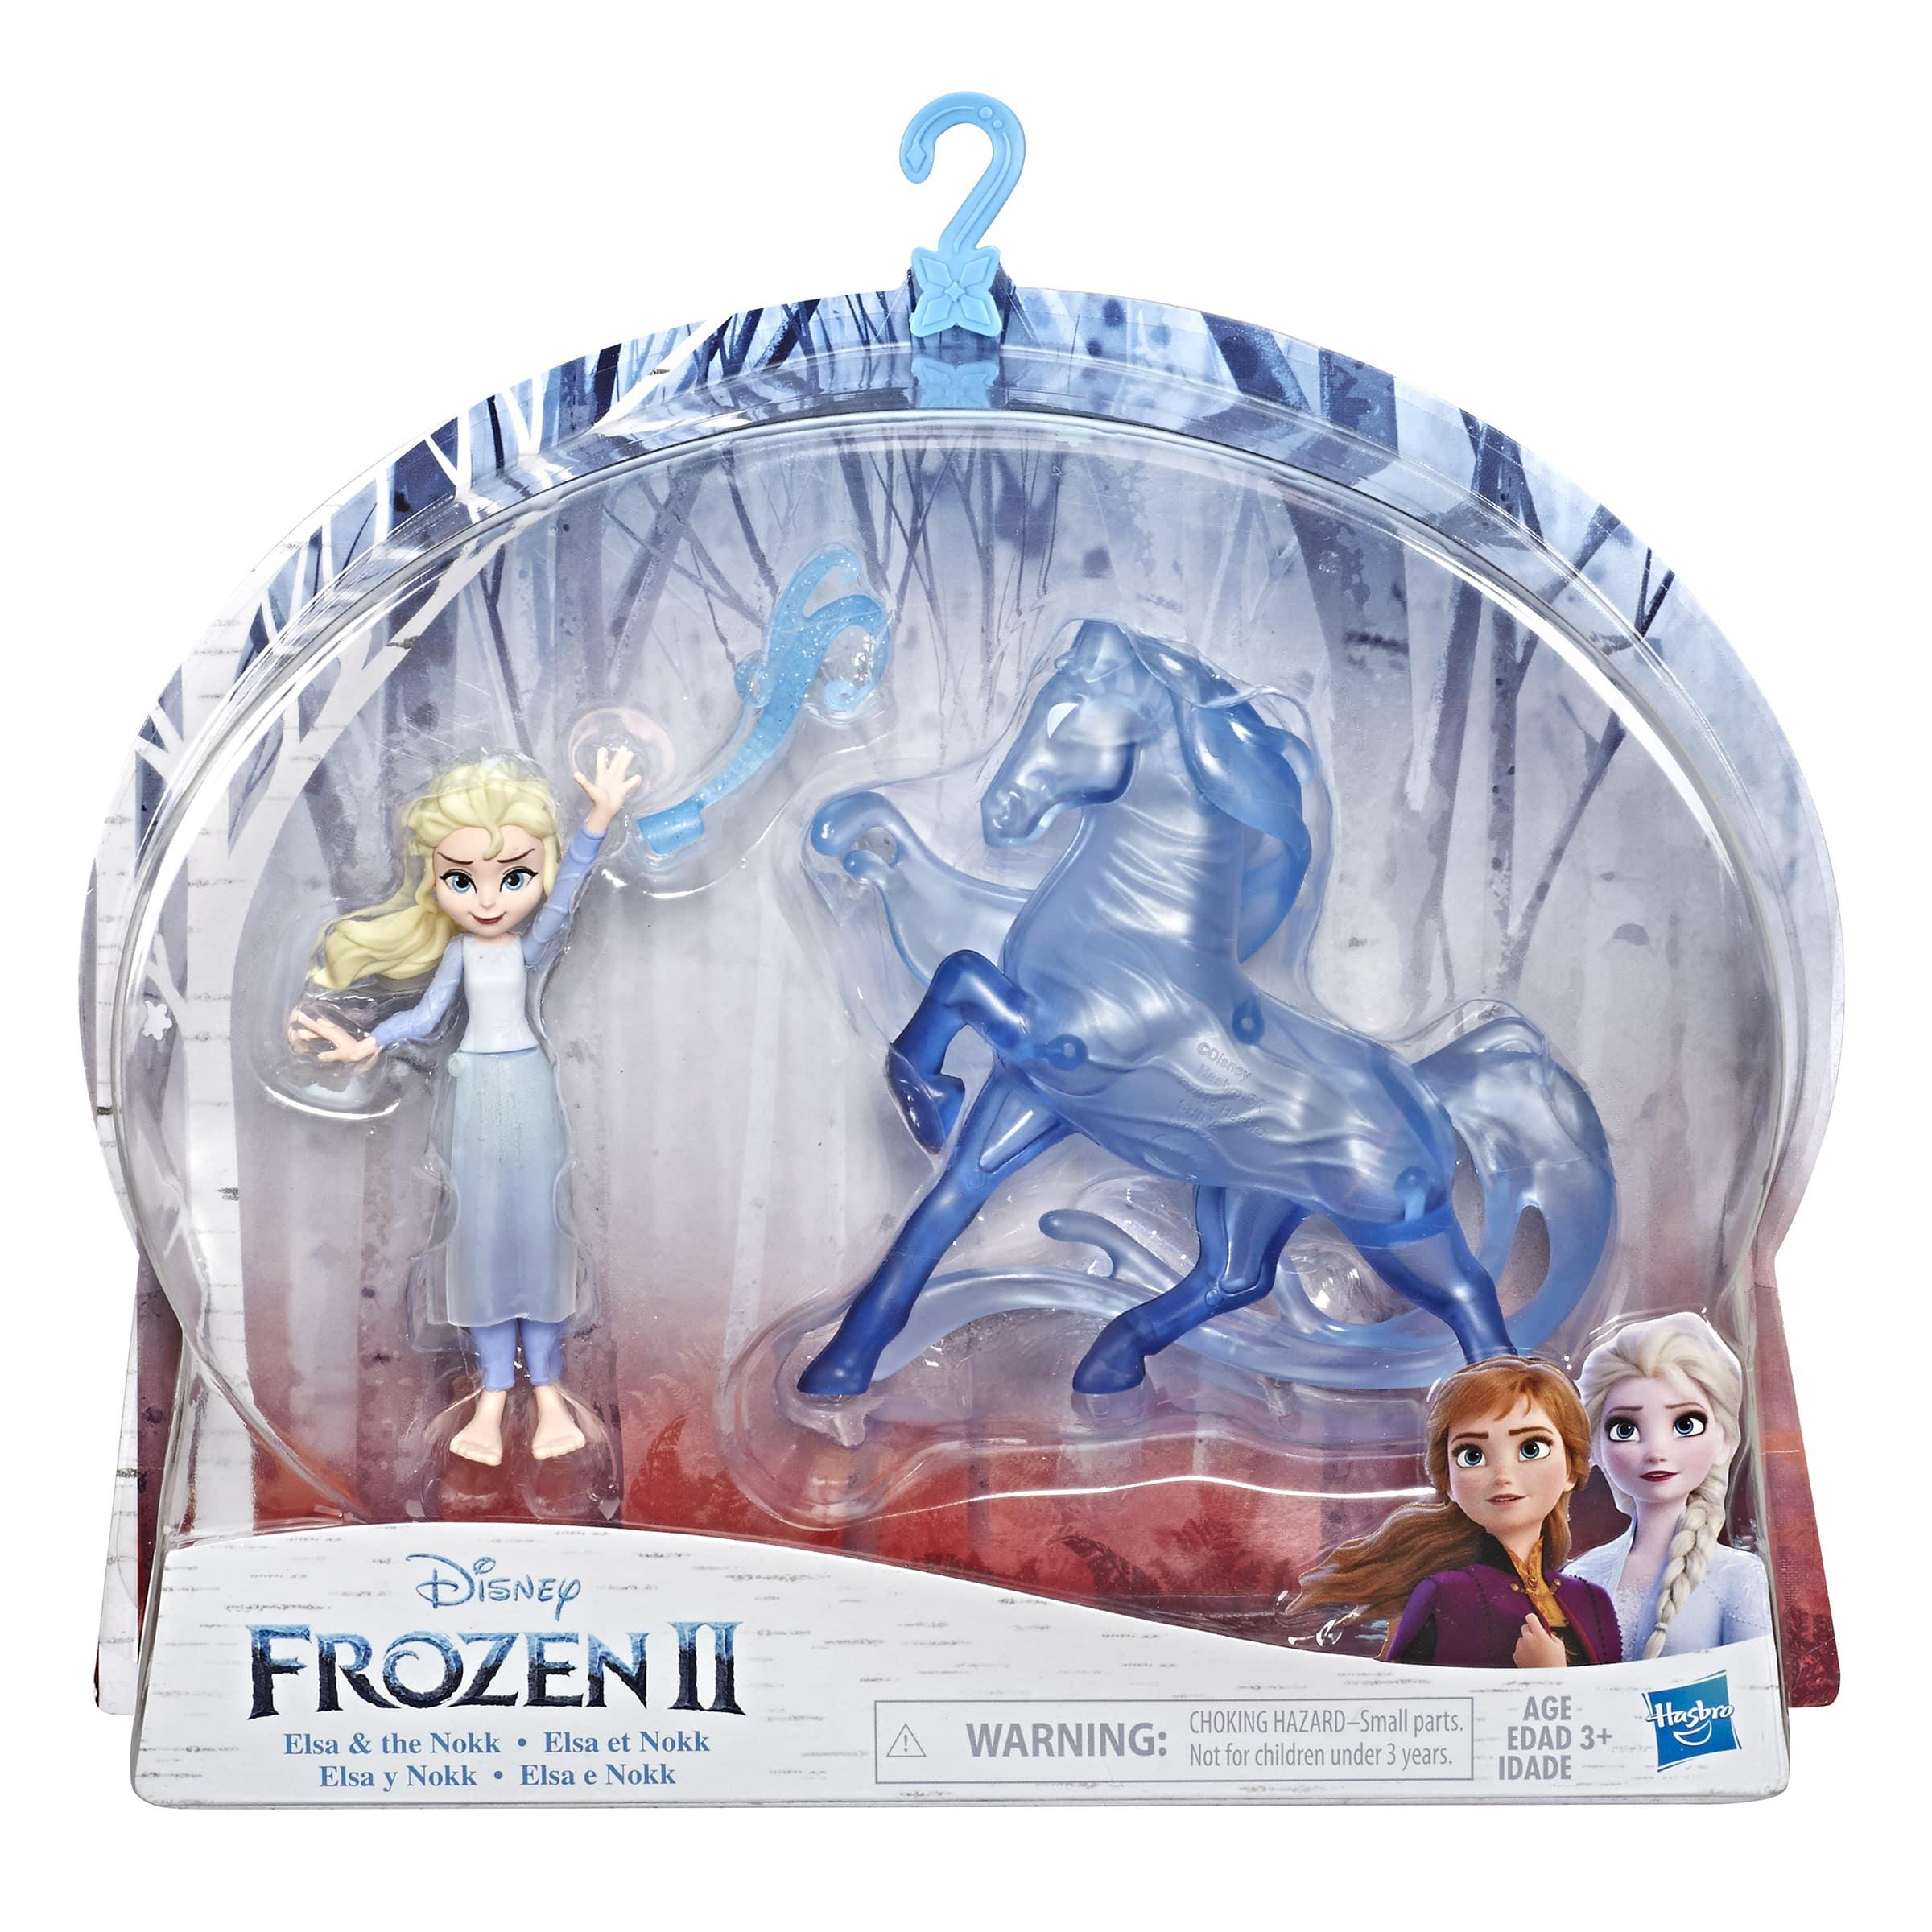 Disney Frozen II SD 6'' Doll & Friend (E5504/E6857)